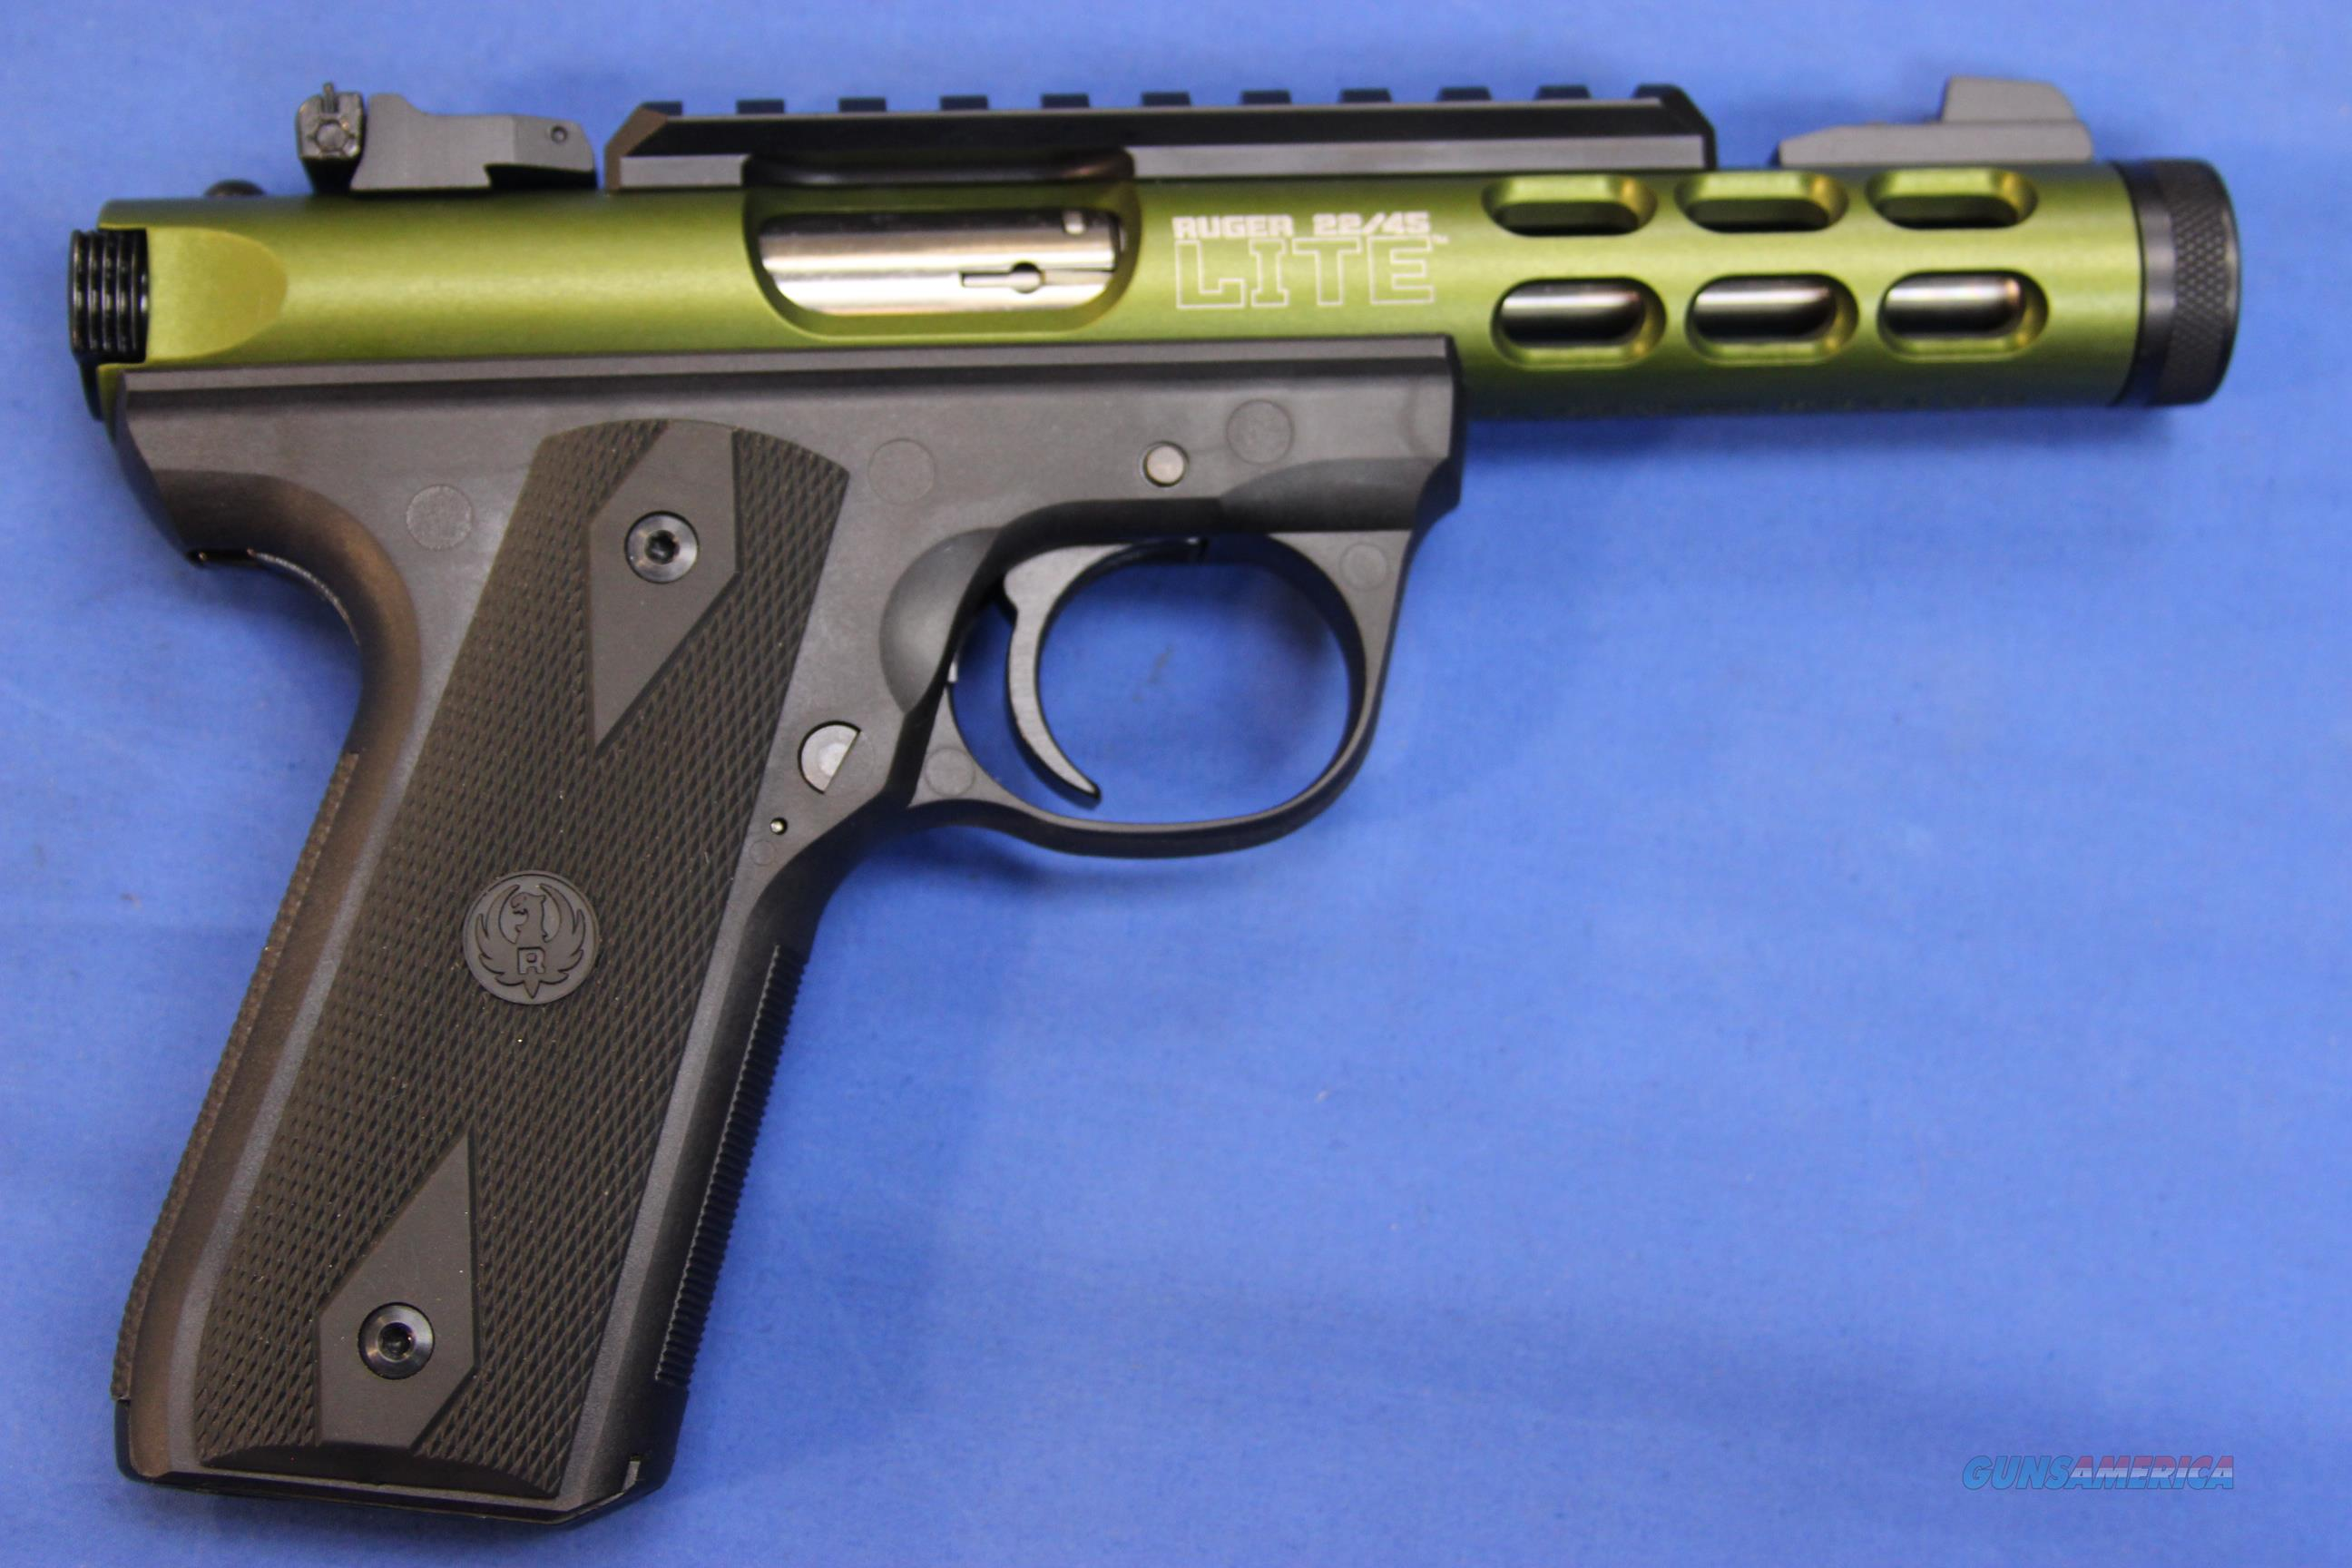 RUGER 22/45 LITE GREEN ANODIZED THREADED .22 LR - NEW!  Guns > Pistols > Ruger Semi-Auto Pistols > 22/45